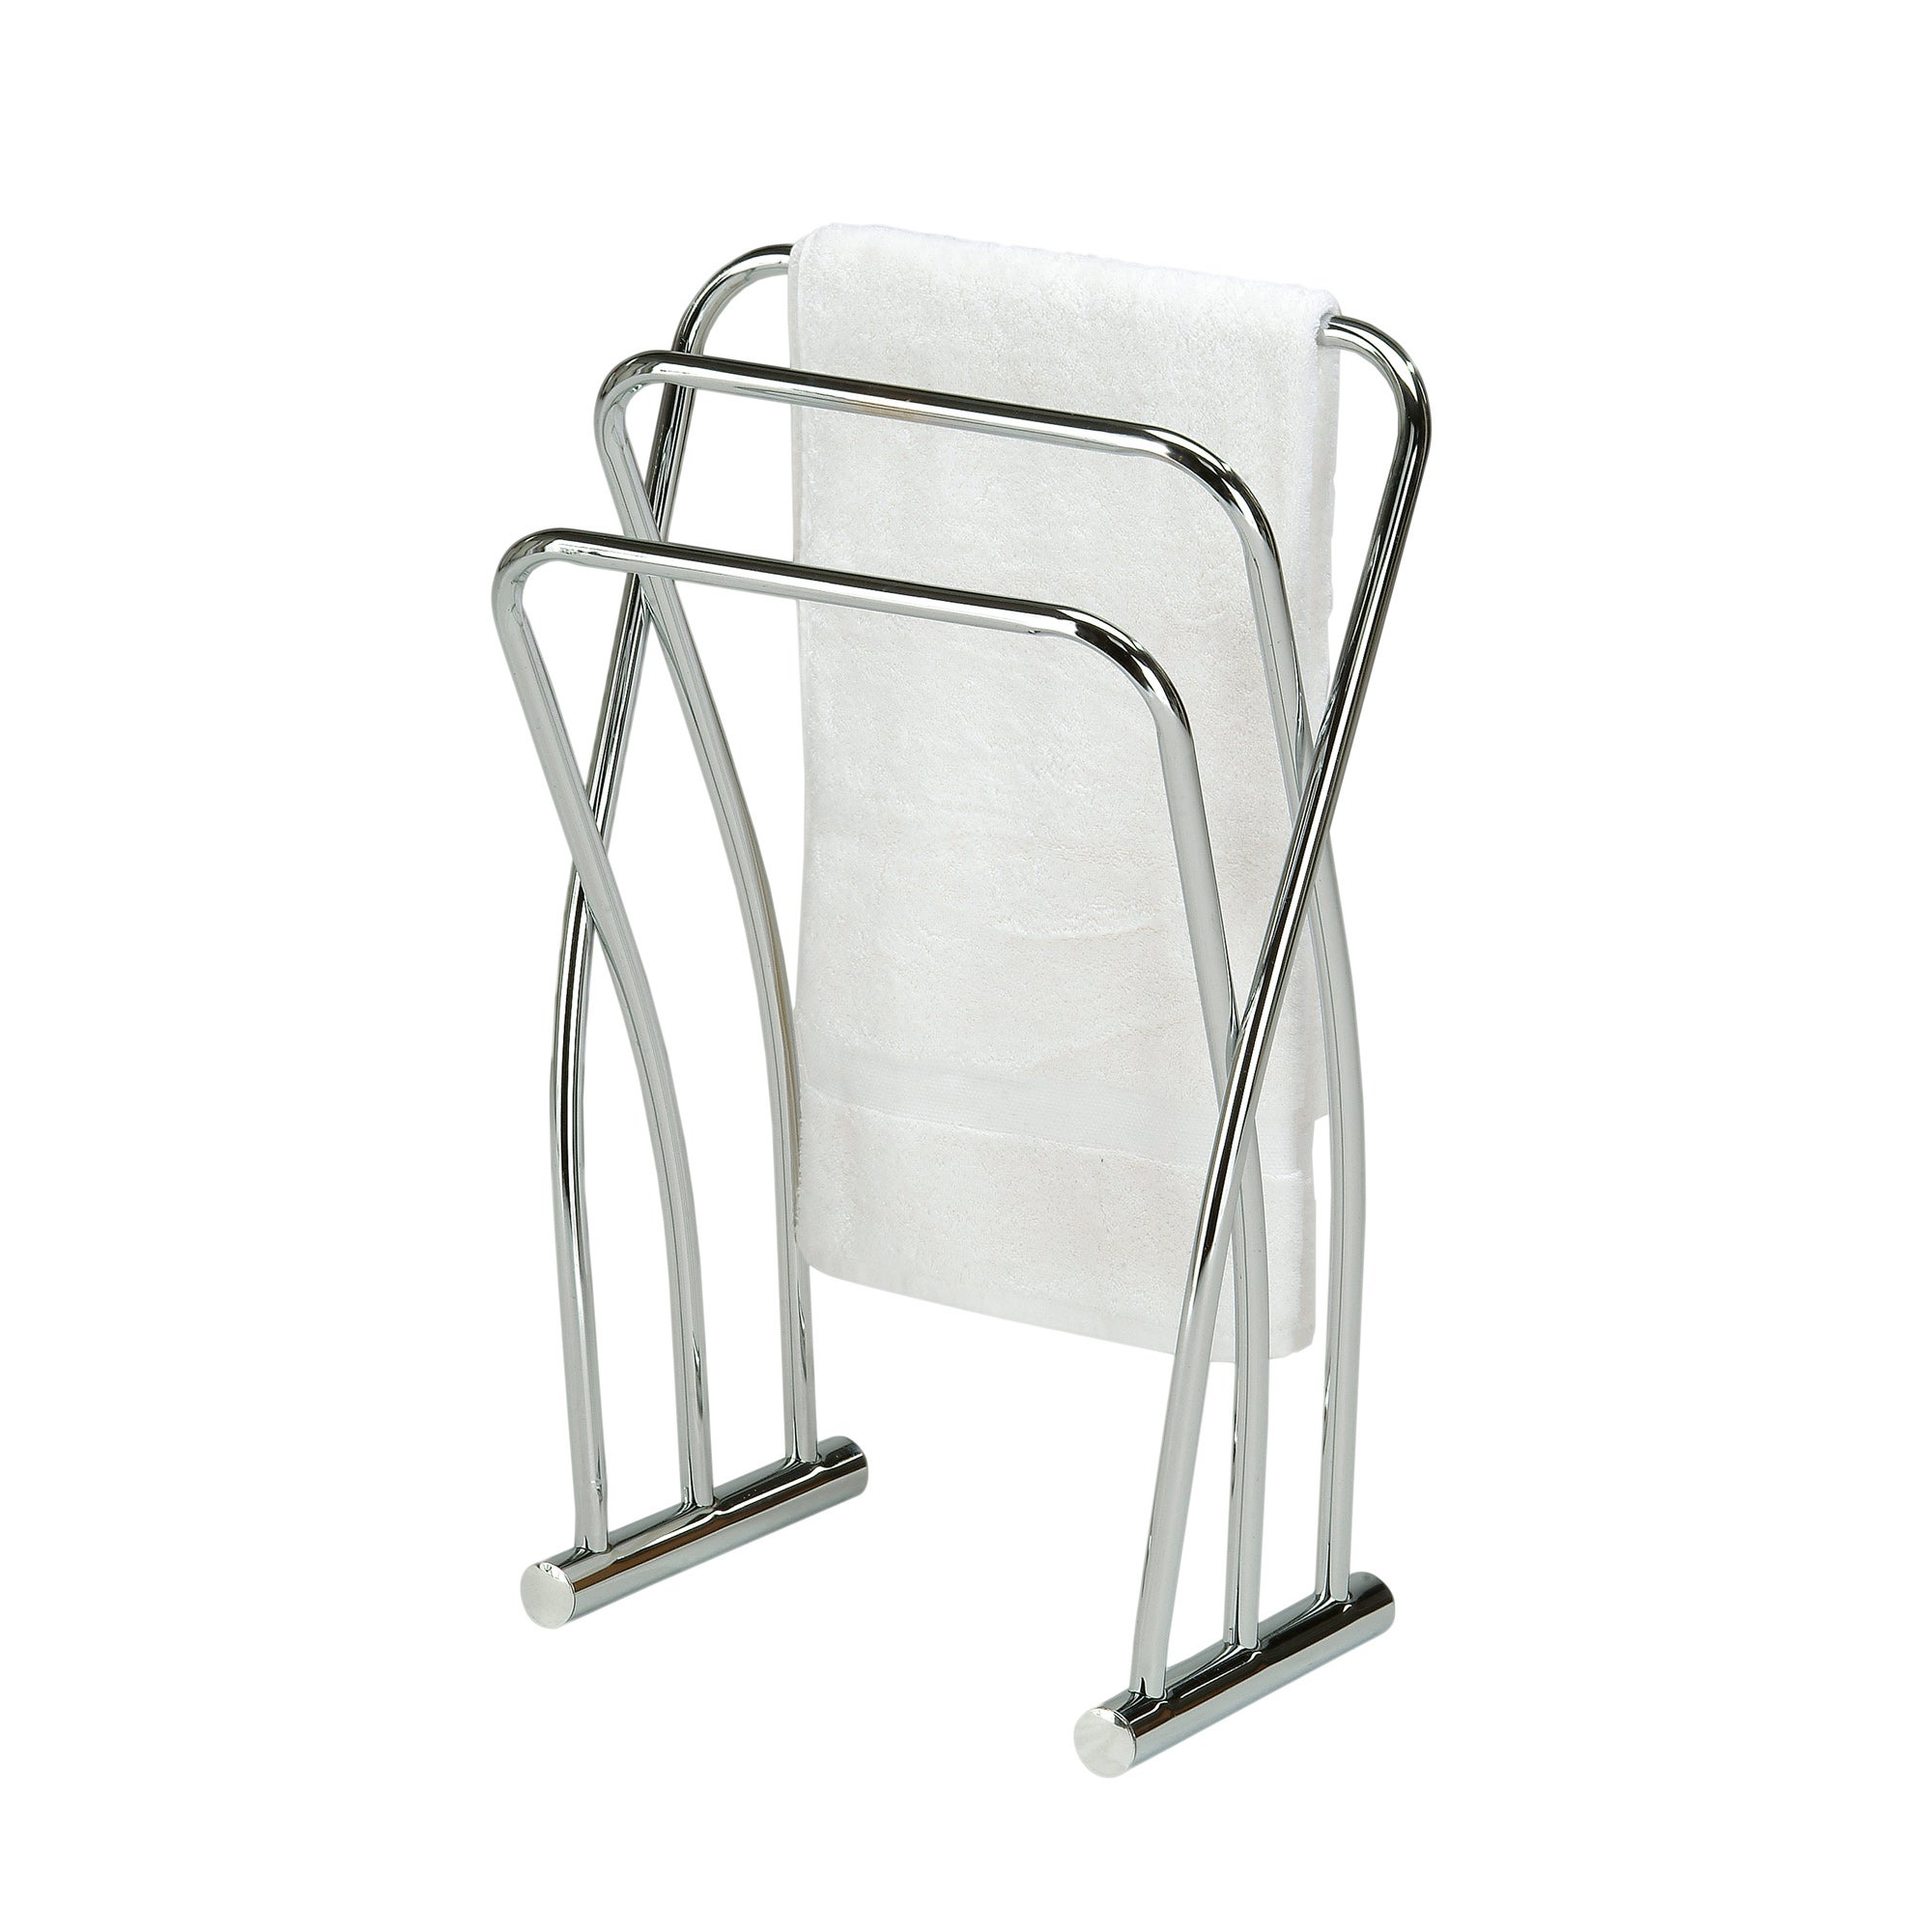 Chrome finish towel bathroom quilt rack stand overstock shopping